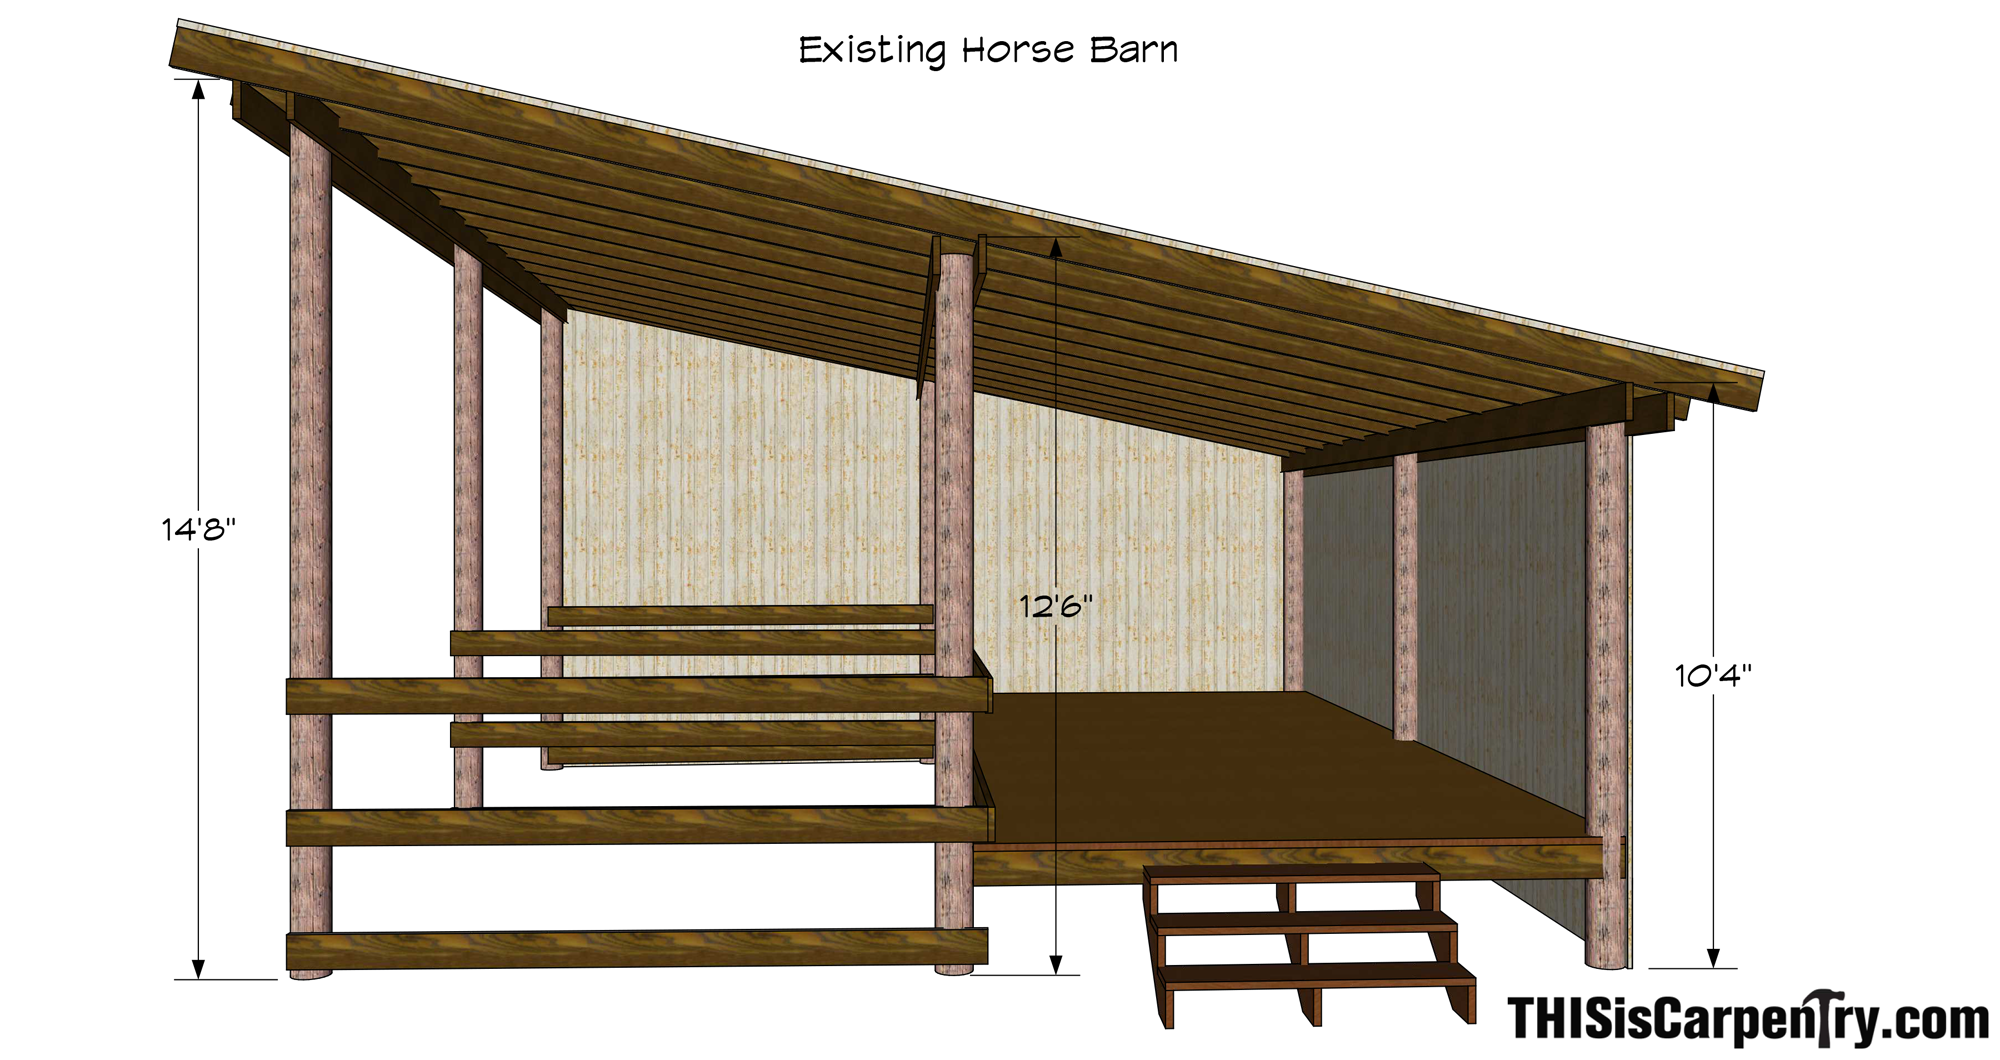 Building a tractor barn from a horse stable thisiscarpentry for Building a tractor barn